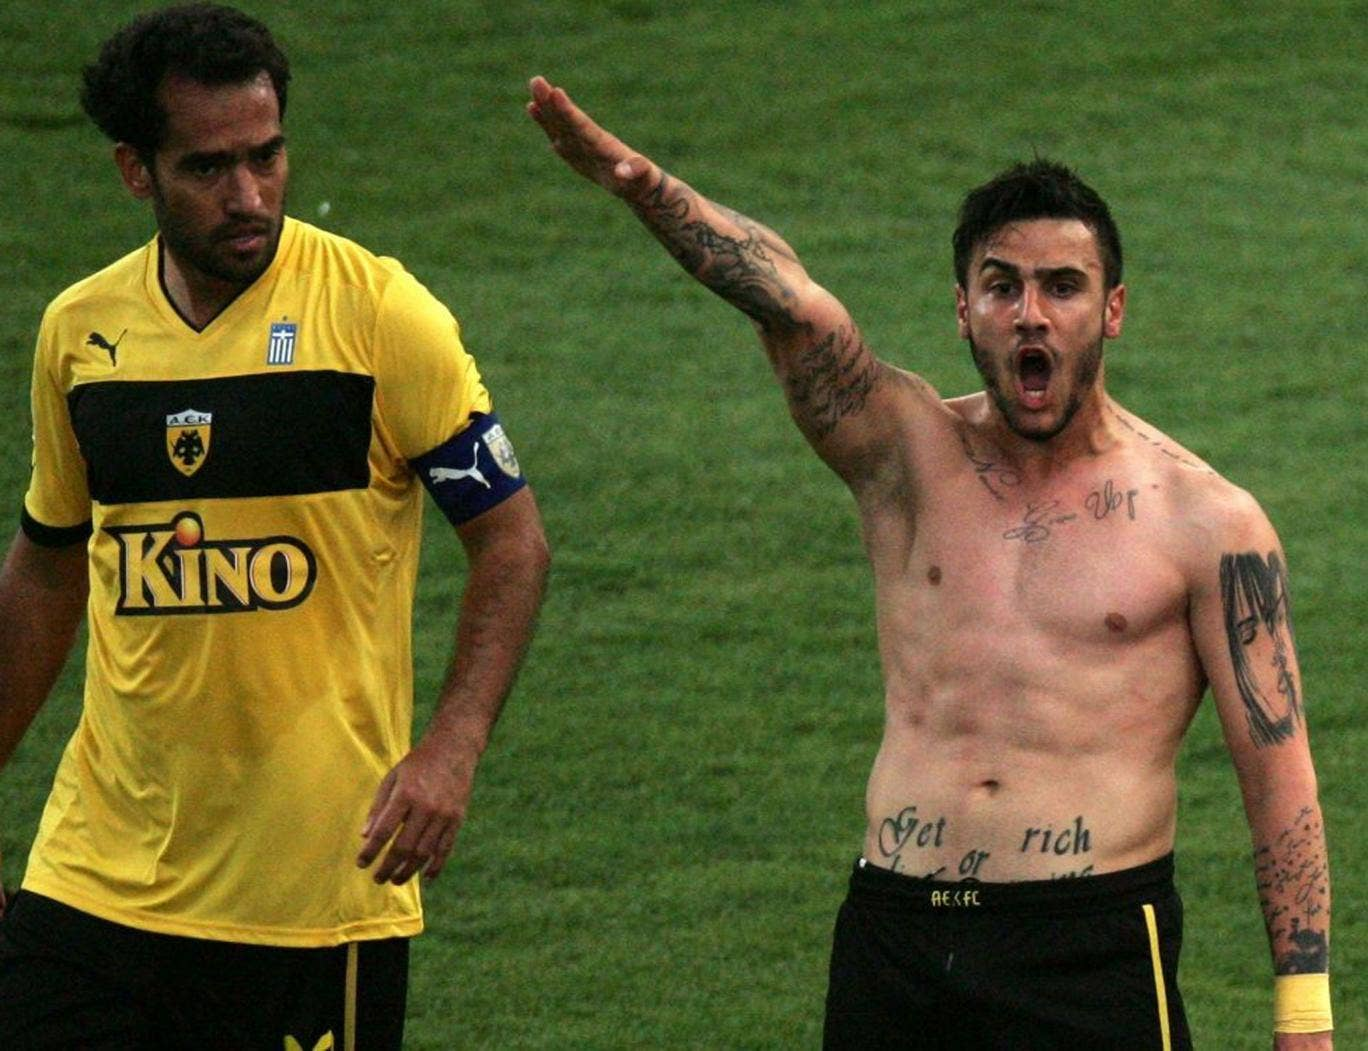 Giorgos Katidis gives what appears to be a fascist salute after scoring his side's winning goal against Veria, as his Brazilian team mate Roger Guerreiro looks on